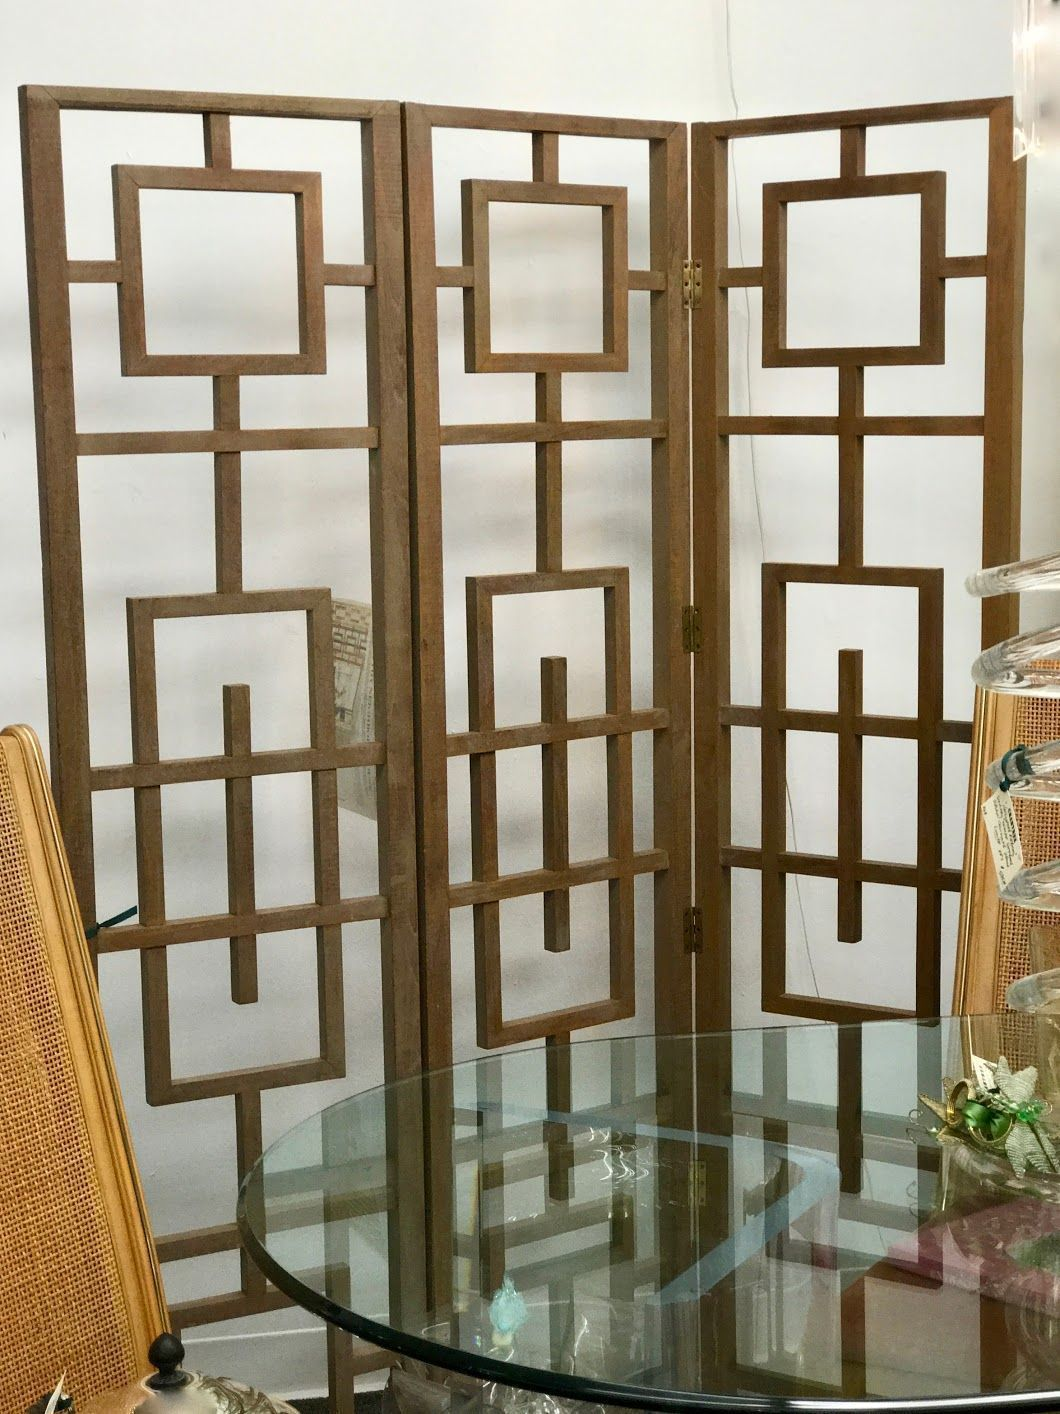 6 Ft Tall Solid Frame Fabric Room Divider 4 Panels: Room Divider Design Decoration Room Divider Ikea.Room